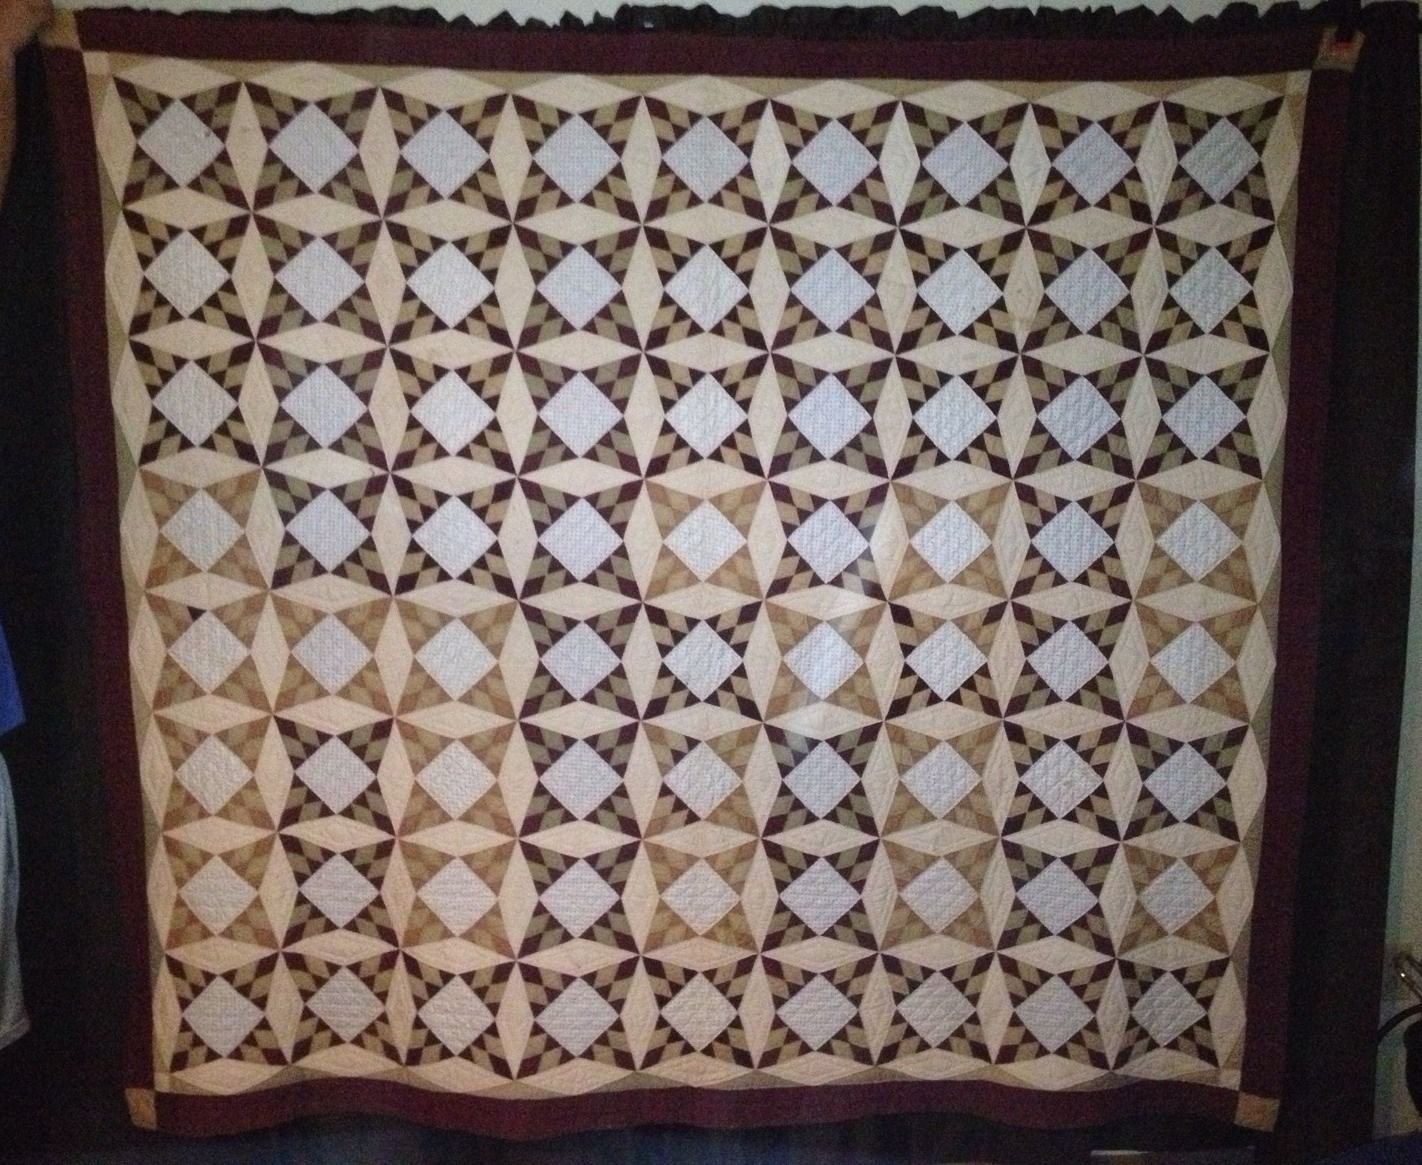 FOUR POINT VARIATION ANTIQUE PIECED QUILT, neutrals